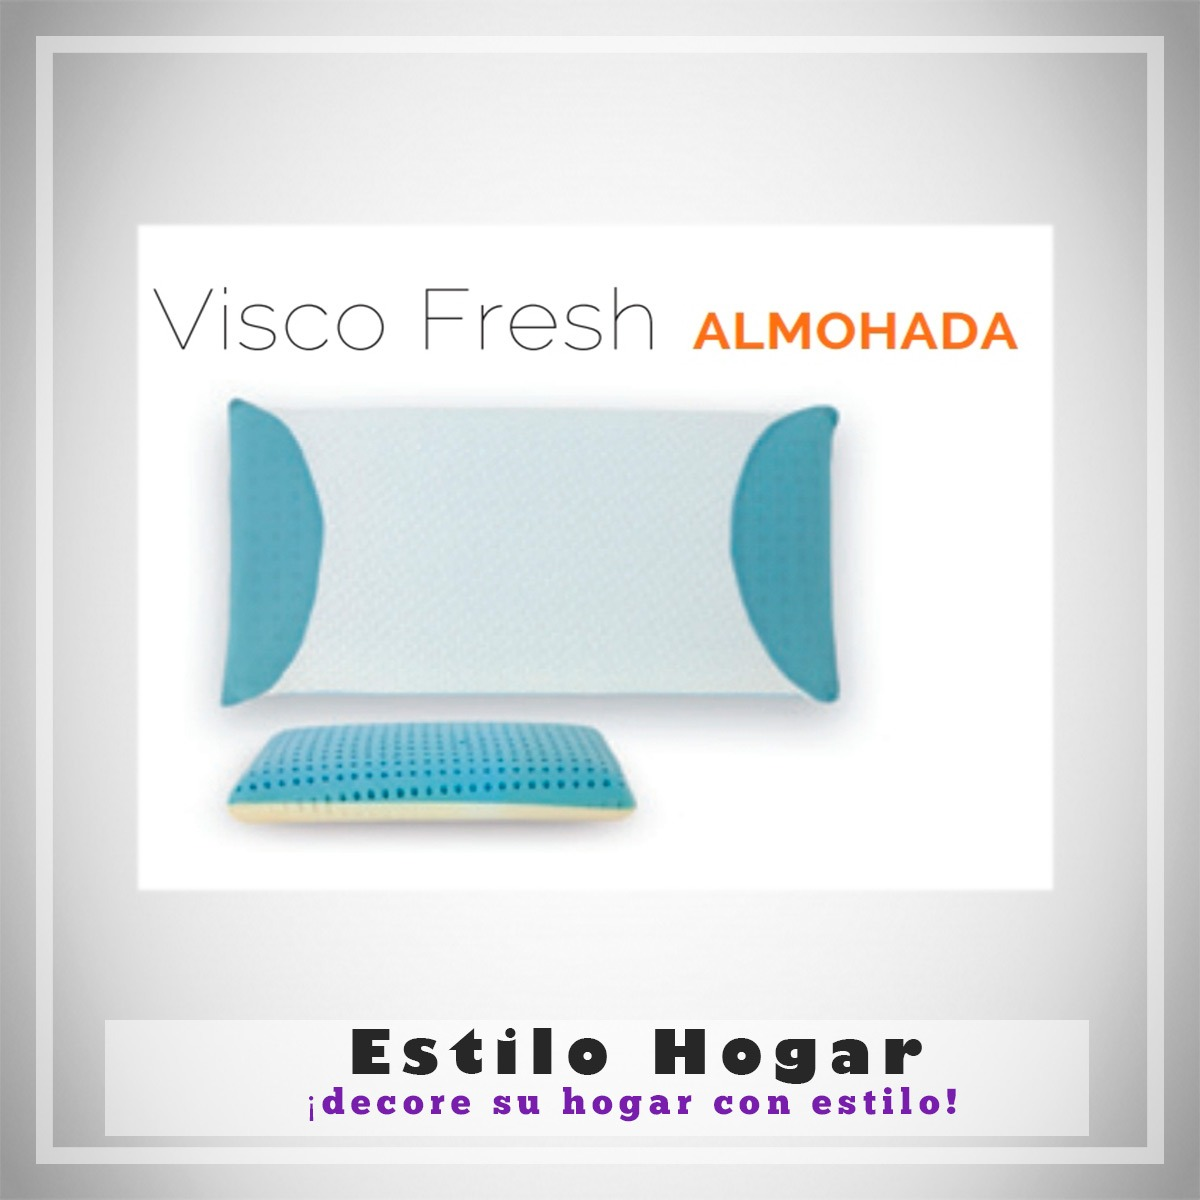 Funda Almohada VISCO FRESH